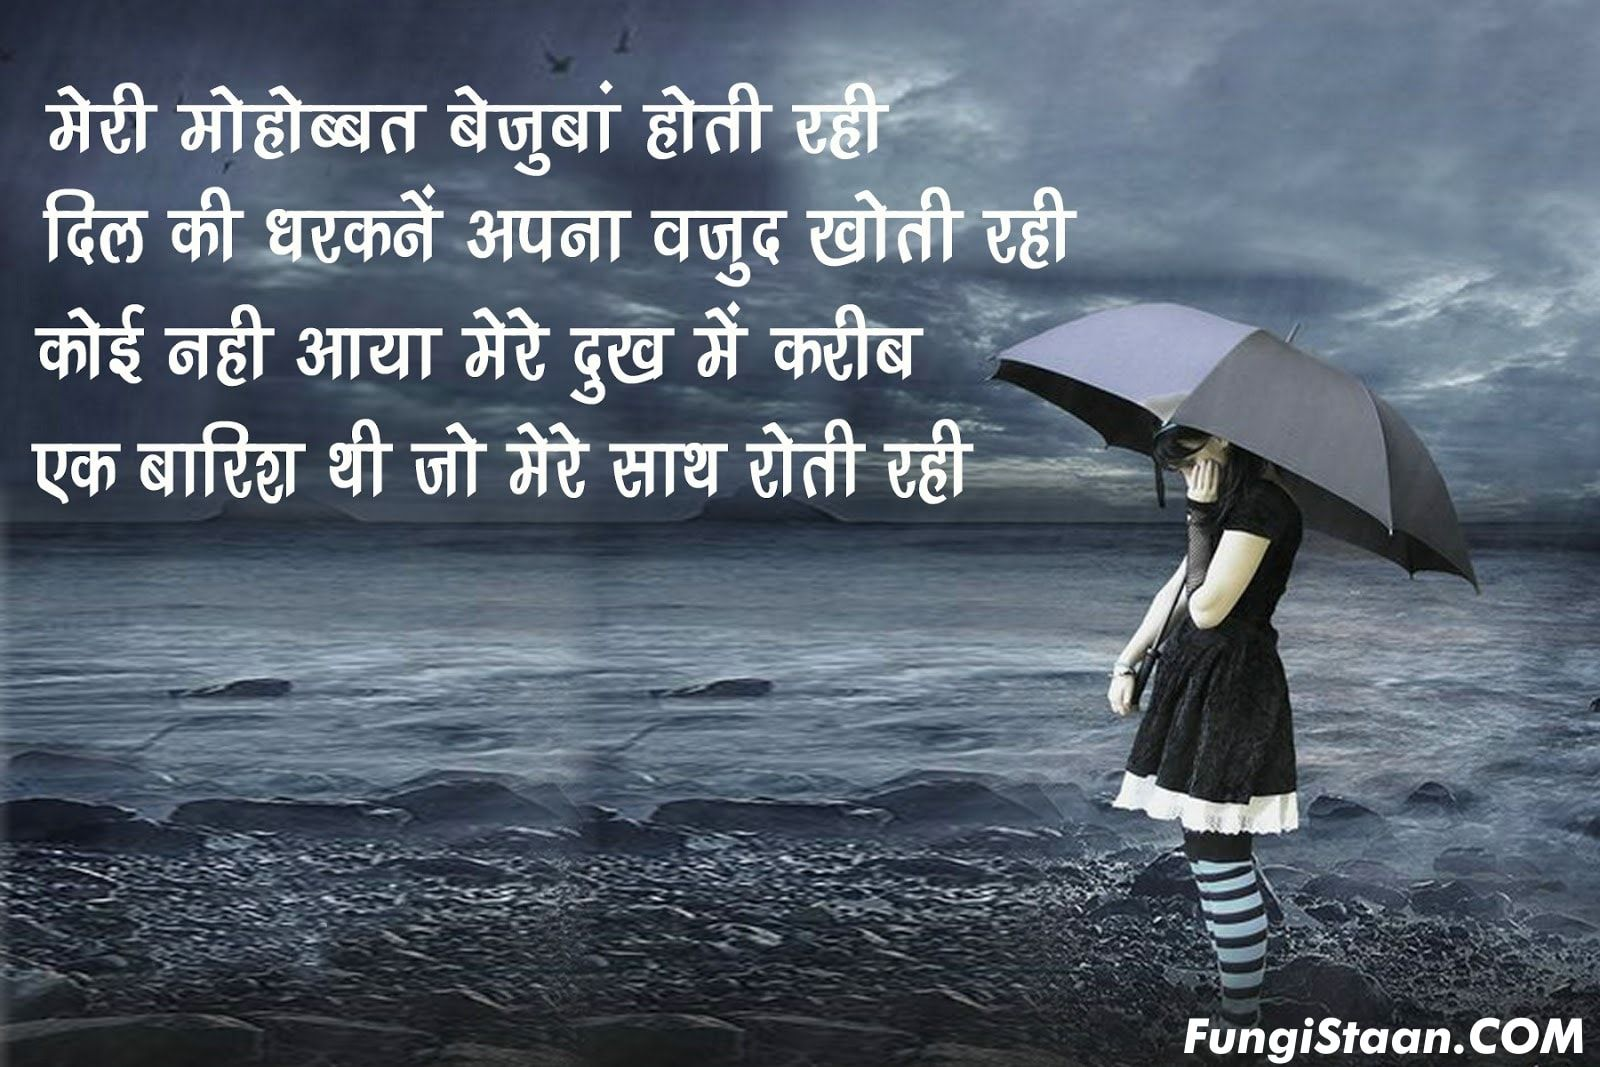 Top 30 love sad shayari images download fungistaan adorable top 30 love sad shayari images download fungistaan voltagebd